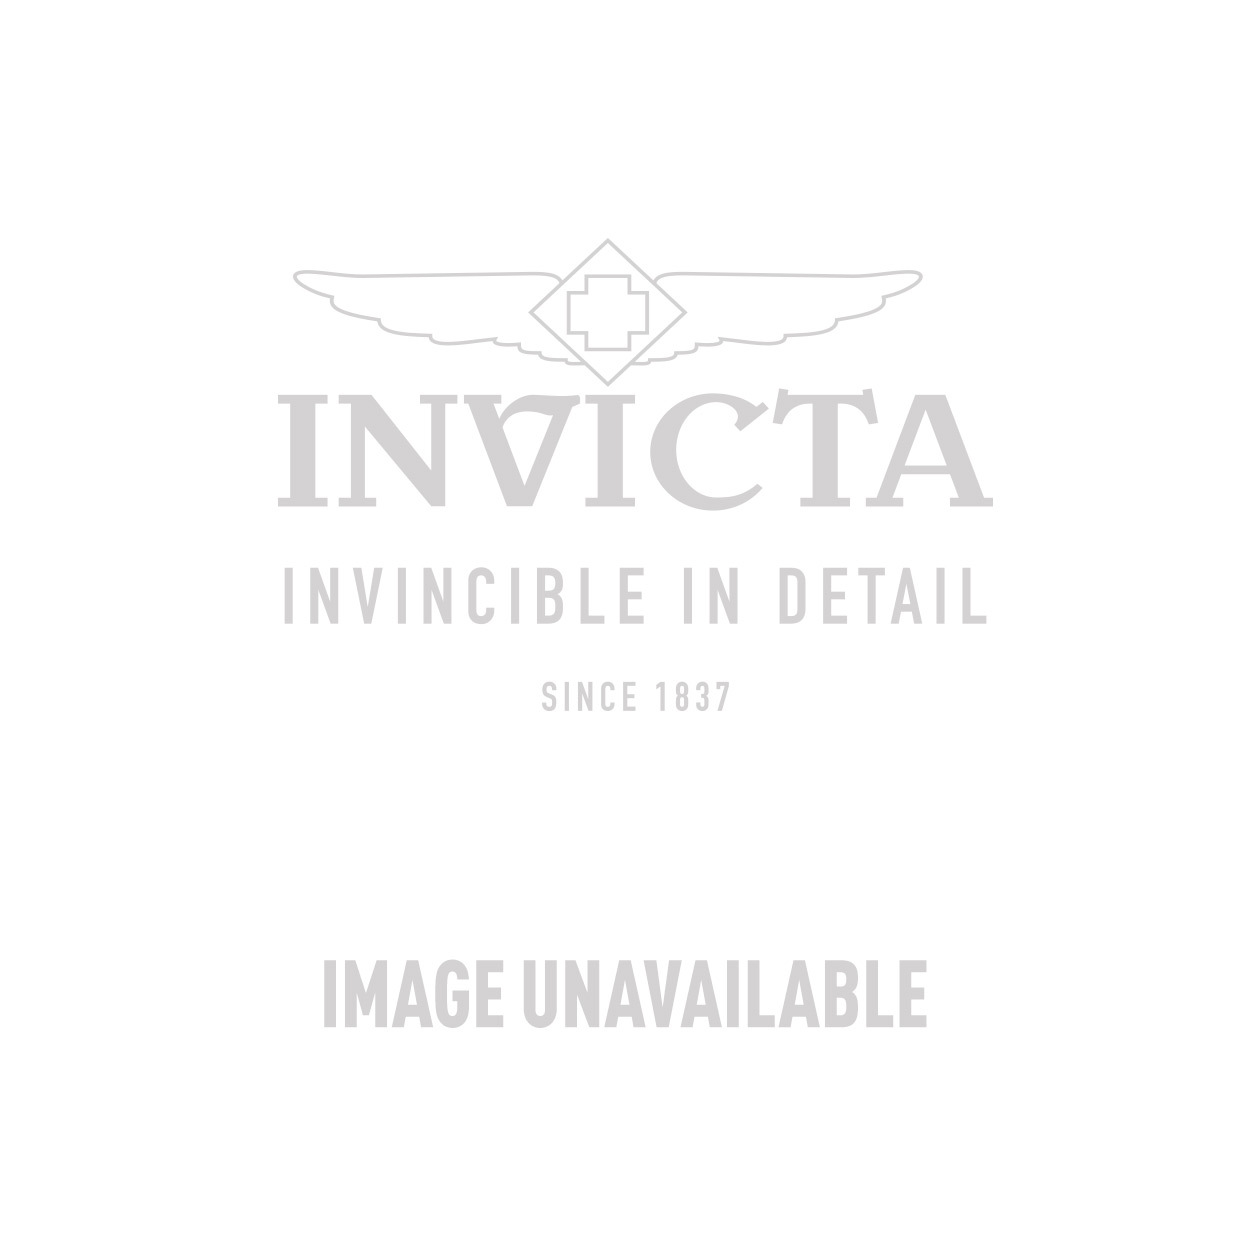 Invicta Reserve Swiss Made Automatic Watch - Rose Gold, Black case with Rose Gold, Black tone Stainless Steel band - Model 13773